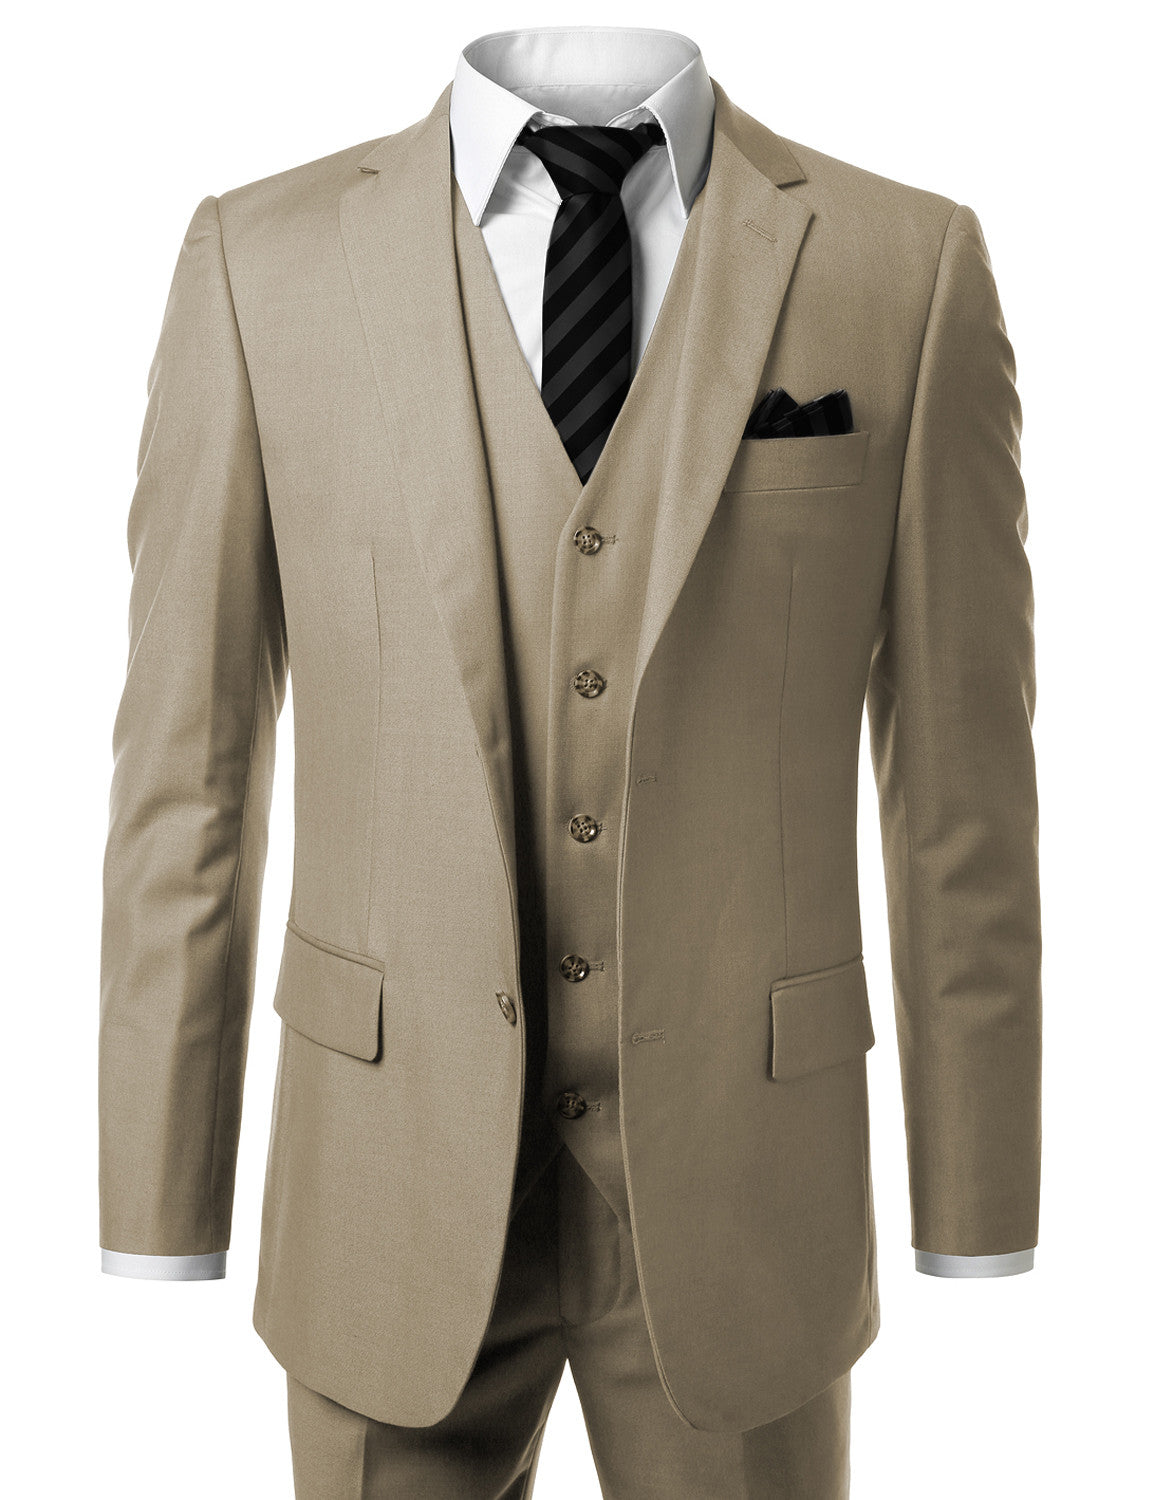 BEIGE Solid Modern Fit 3 Piece Suit- MONDAYSUIT